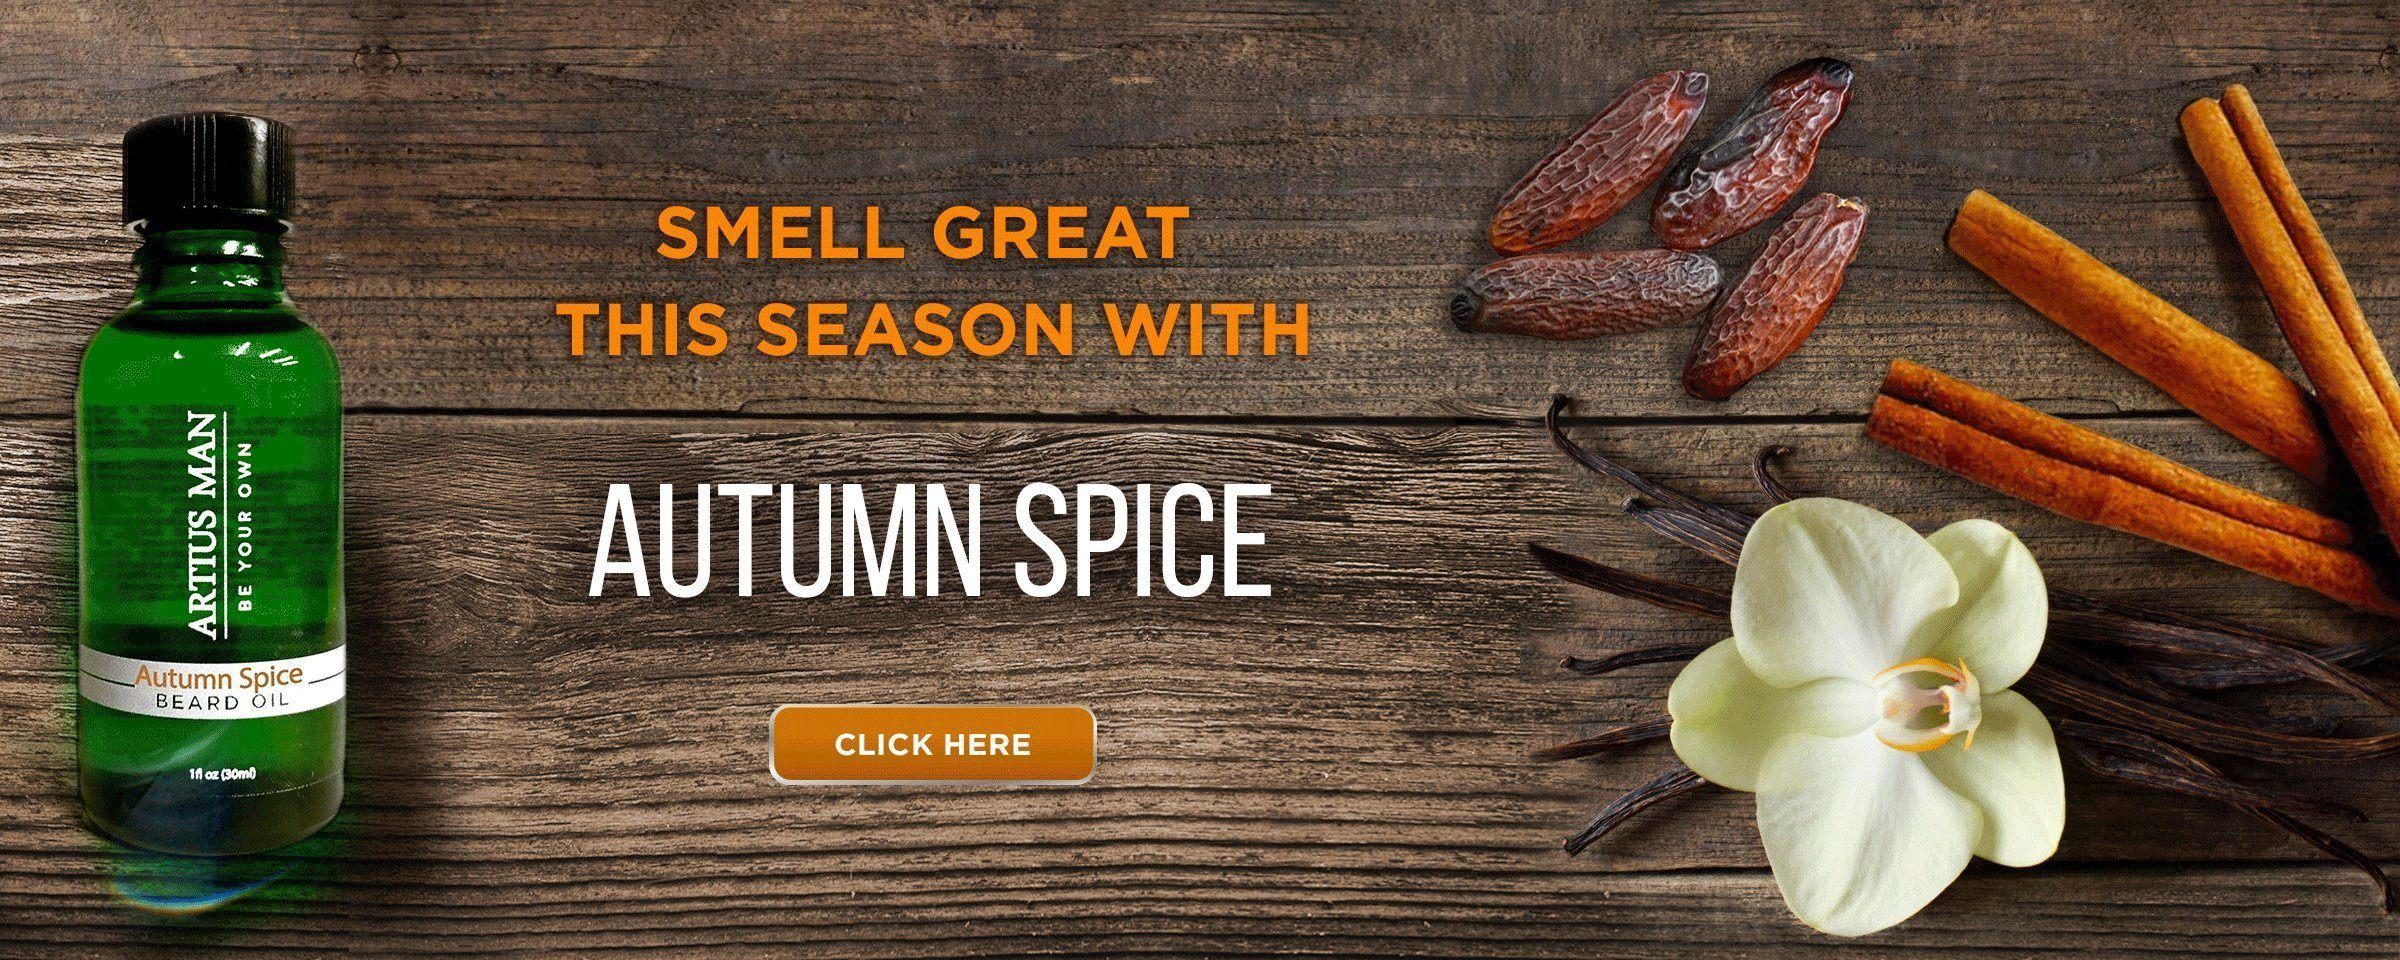 Autumn Spice Beard Care